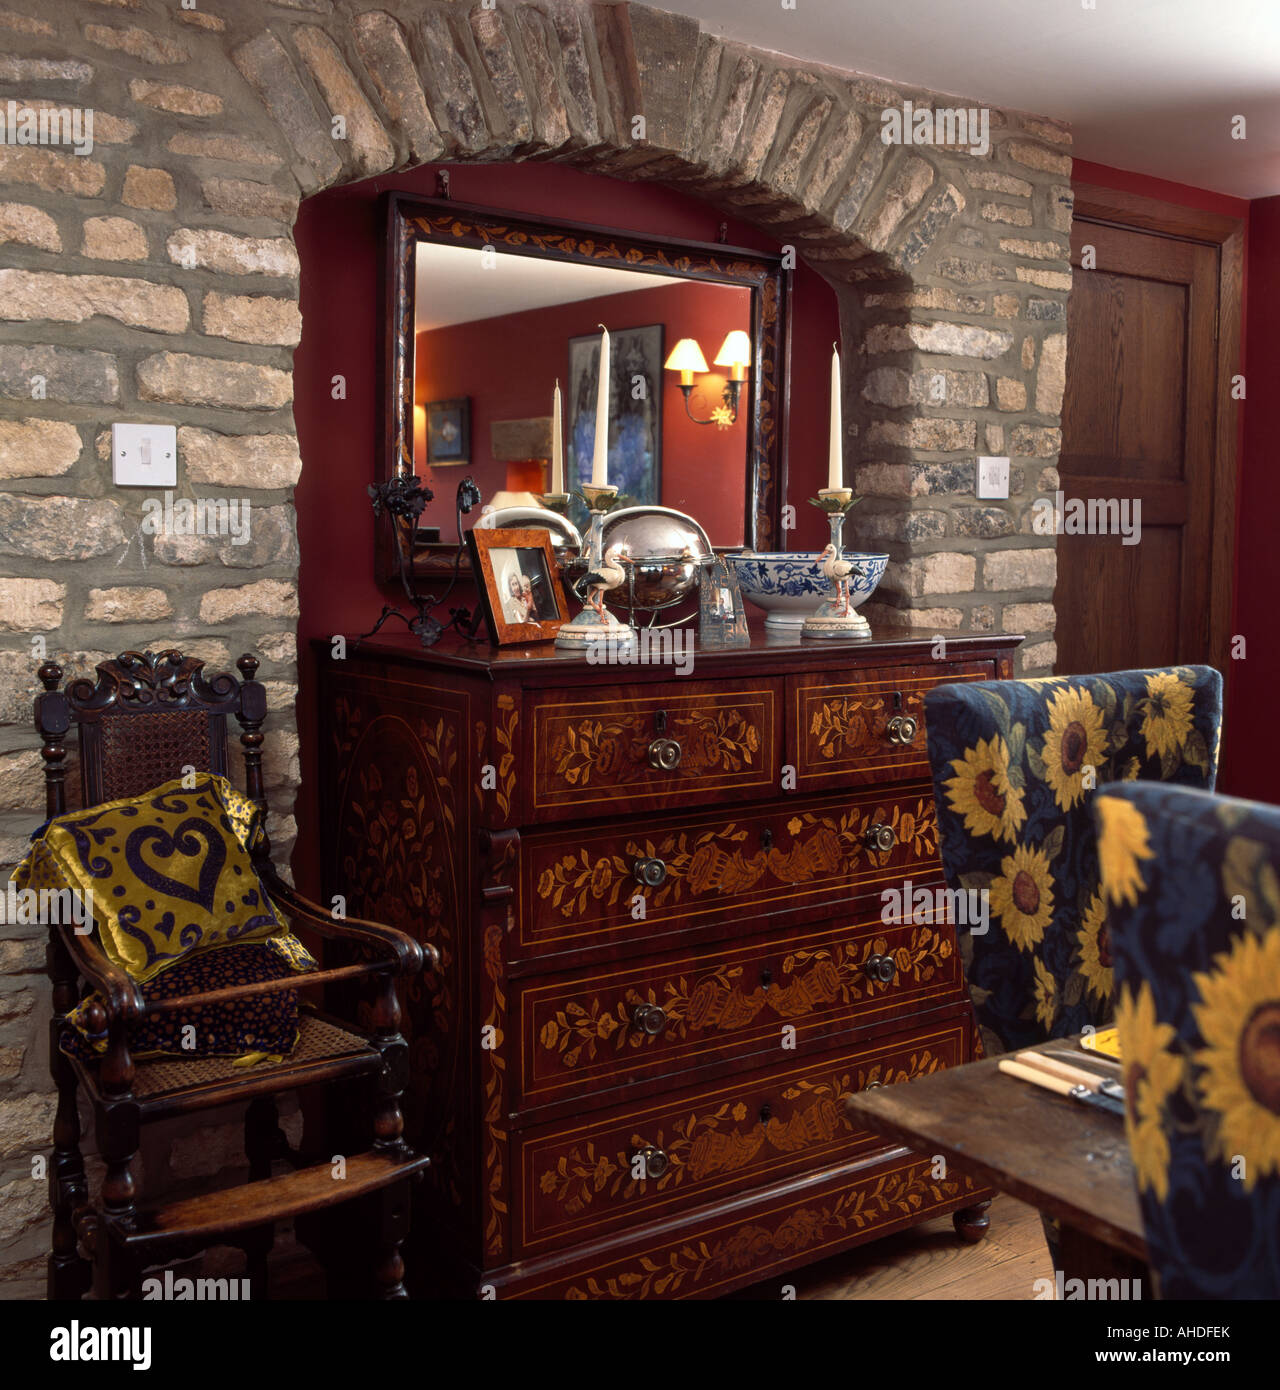 Dining Room Chest Of Drawers: Antique Inlaid Chest Of Drawers In Alcove Of Exposed Stone